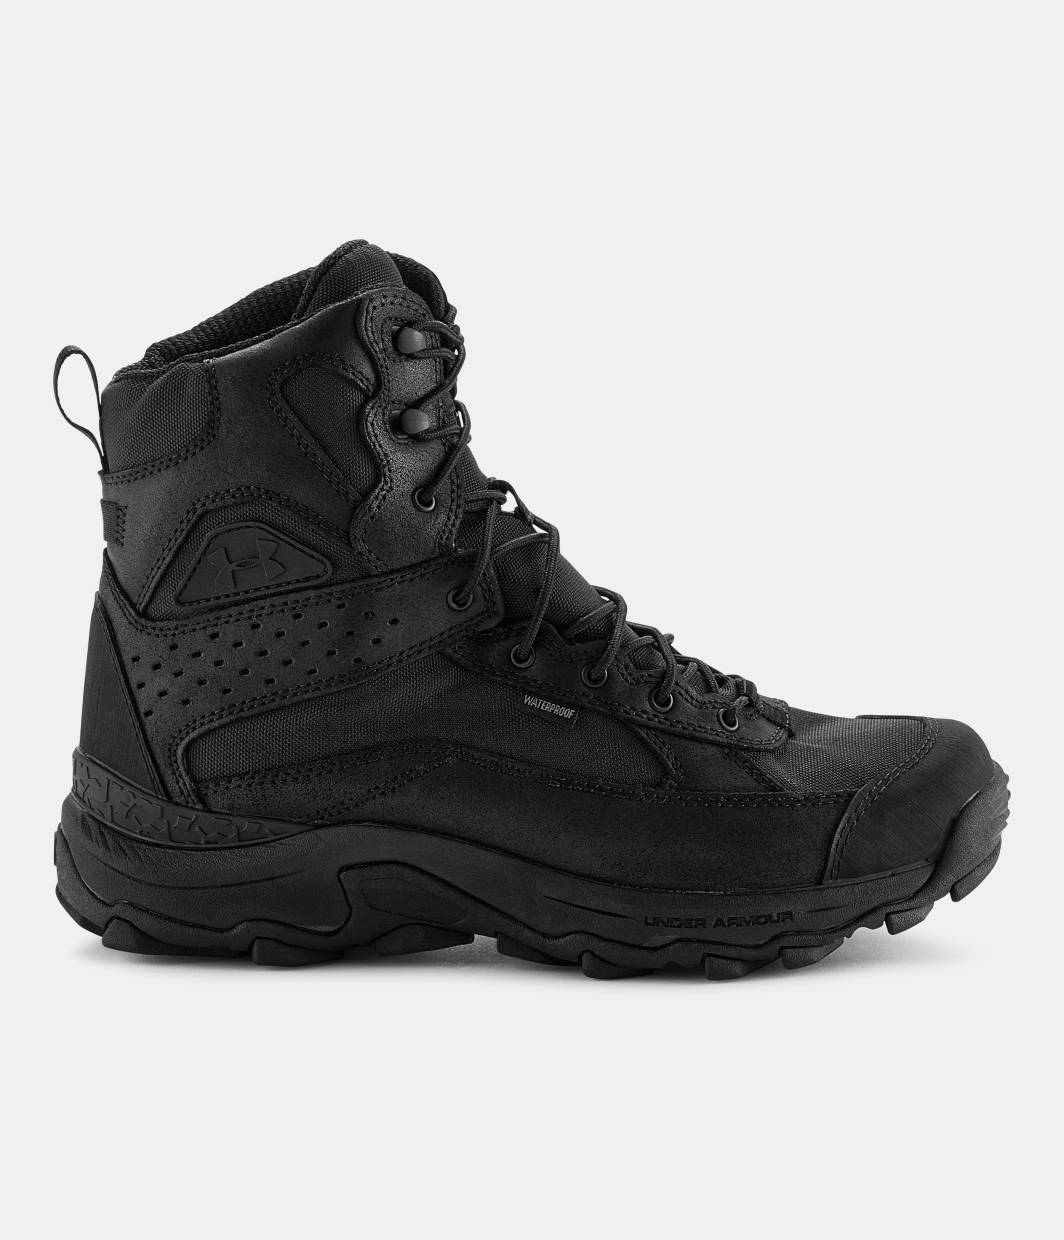 Boots - Men S Ua Speed Freek Bozeman Hunting Boots Black Zoomed Image